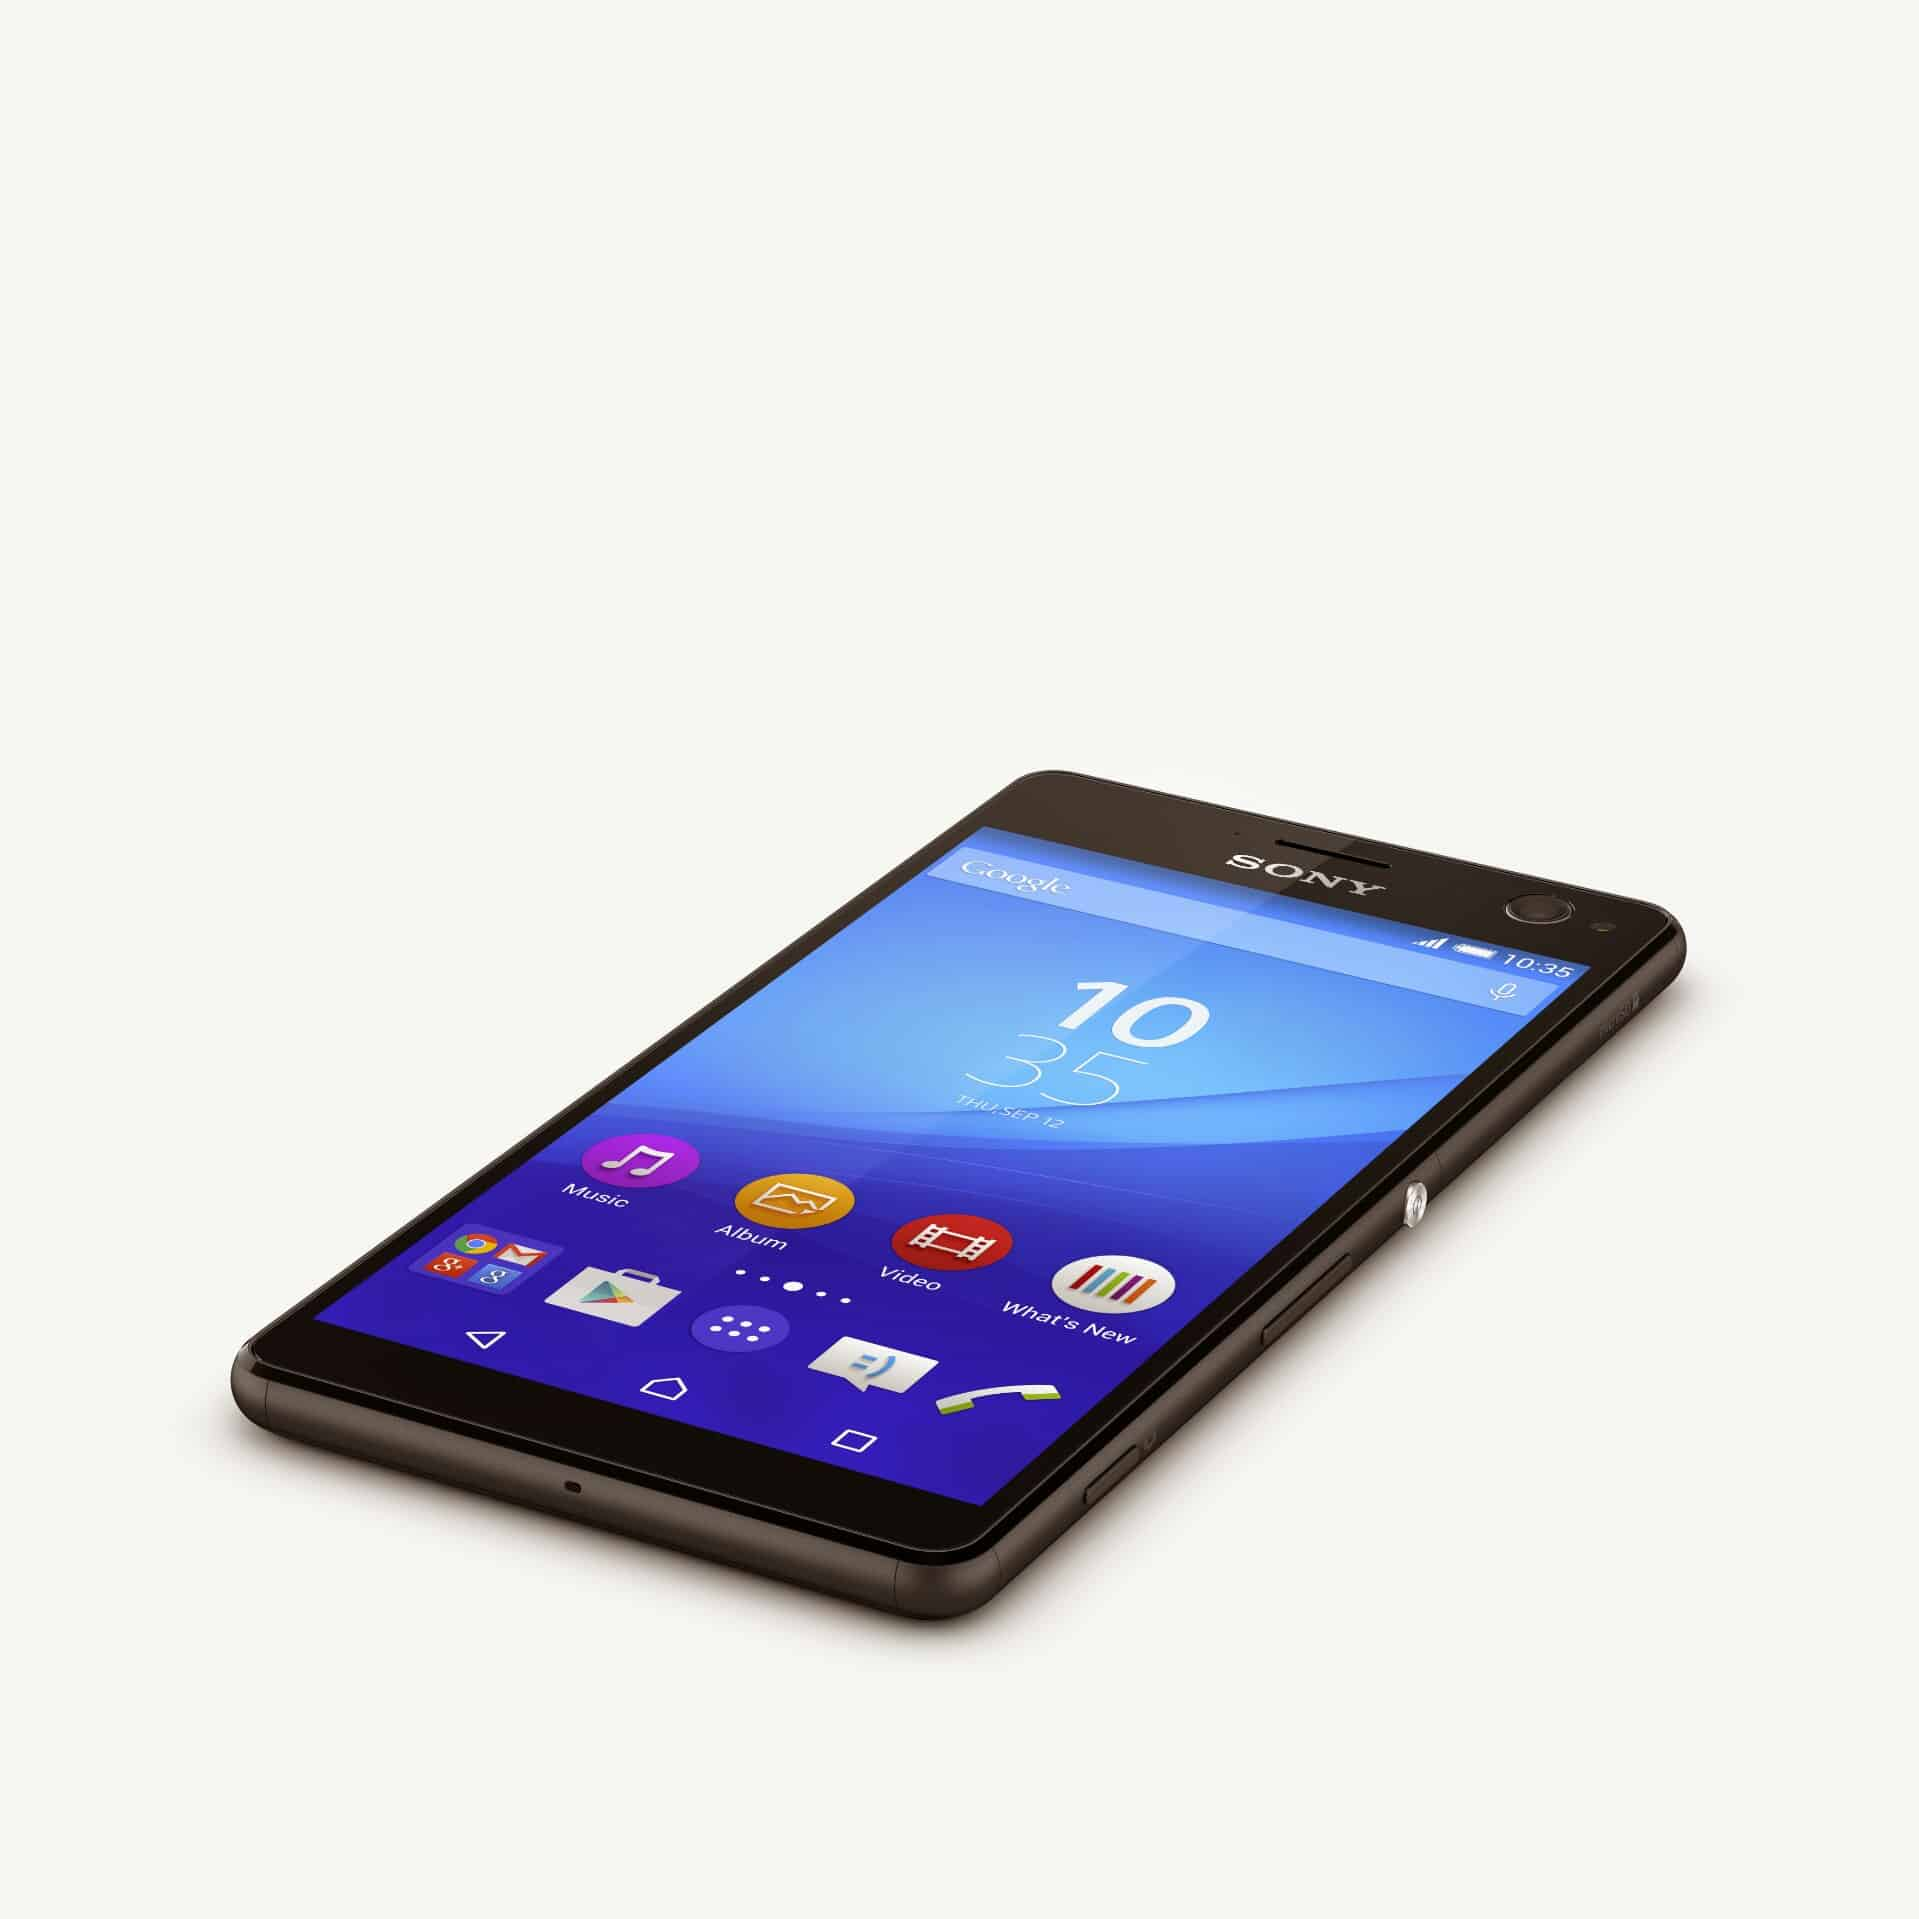 Sony Xperia C4 press images 7